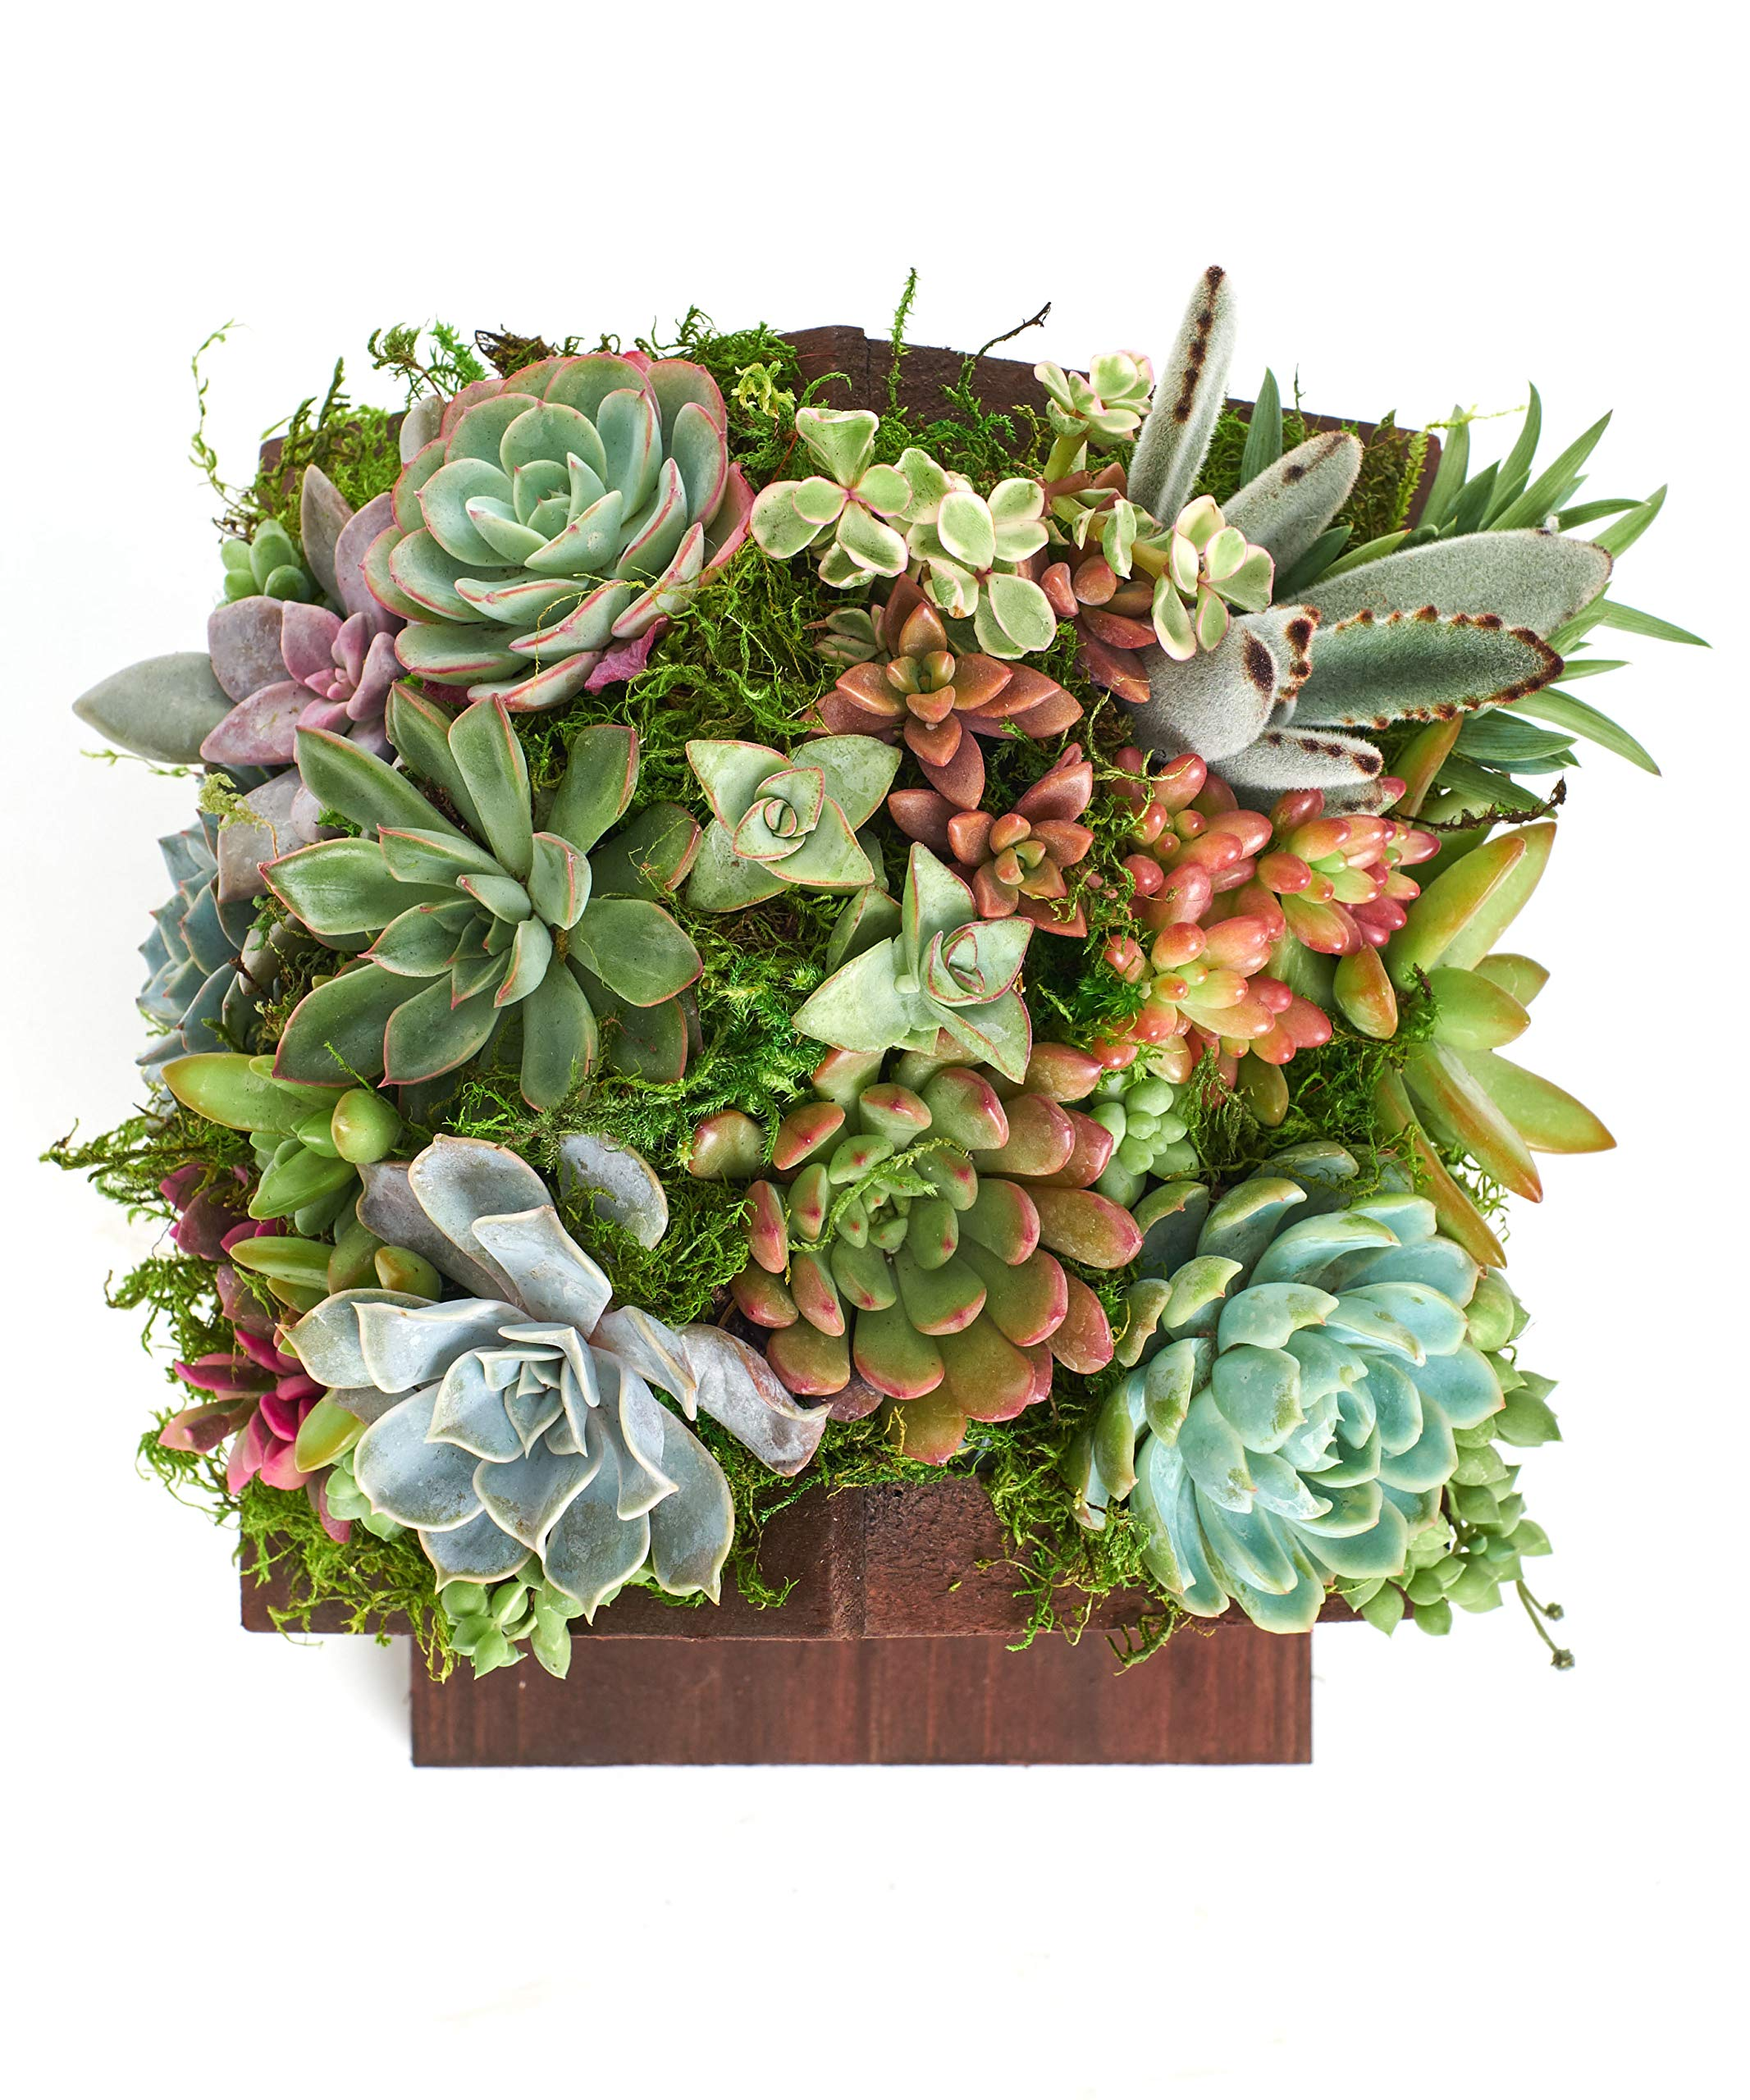 Shop Succulents BIRDHS-20-SUC-KIT Living Succulent Kit Birdhouse Planter by Shop Succulents (Image #3)